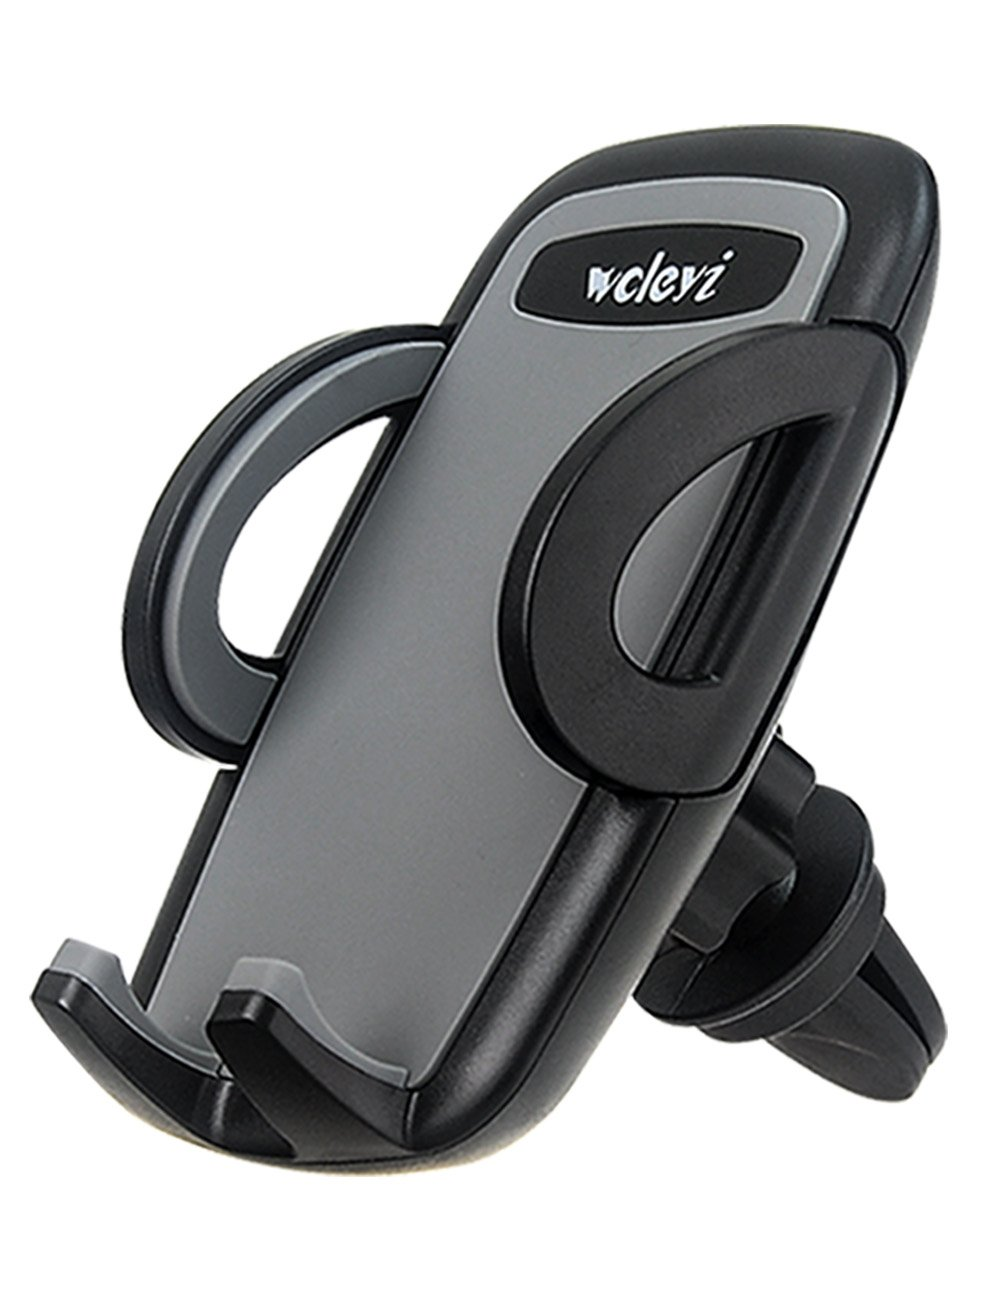 woleyi Car Vent Mount Air Vent Clip - Car Holder for Cell Phones and GPS by woleyi (Image #1)